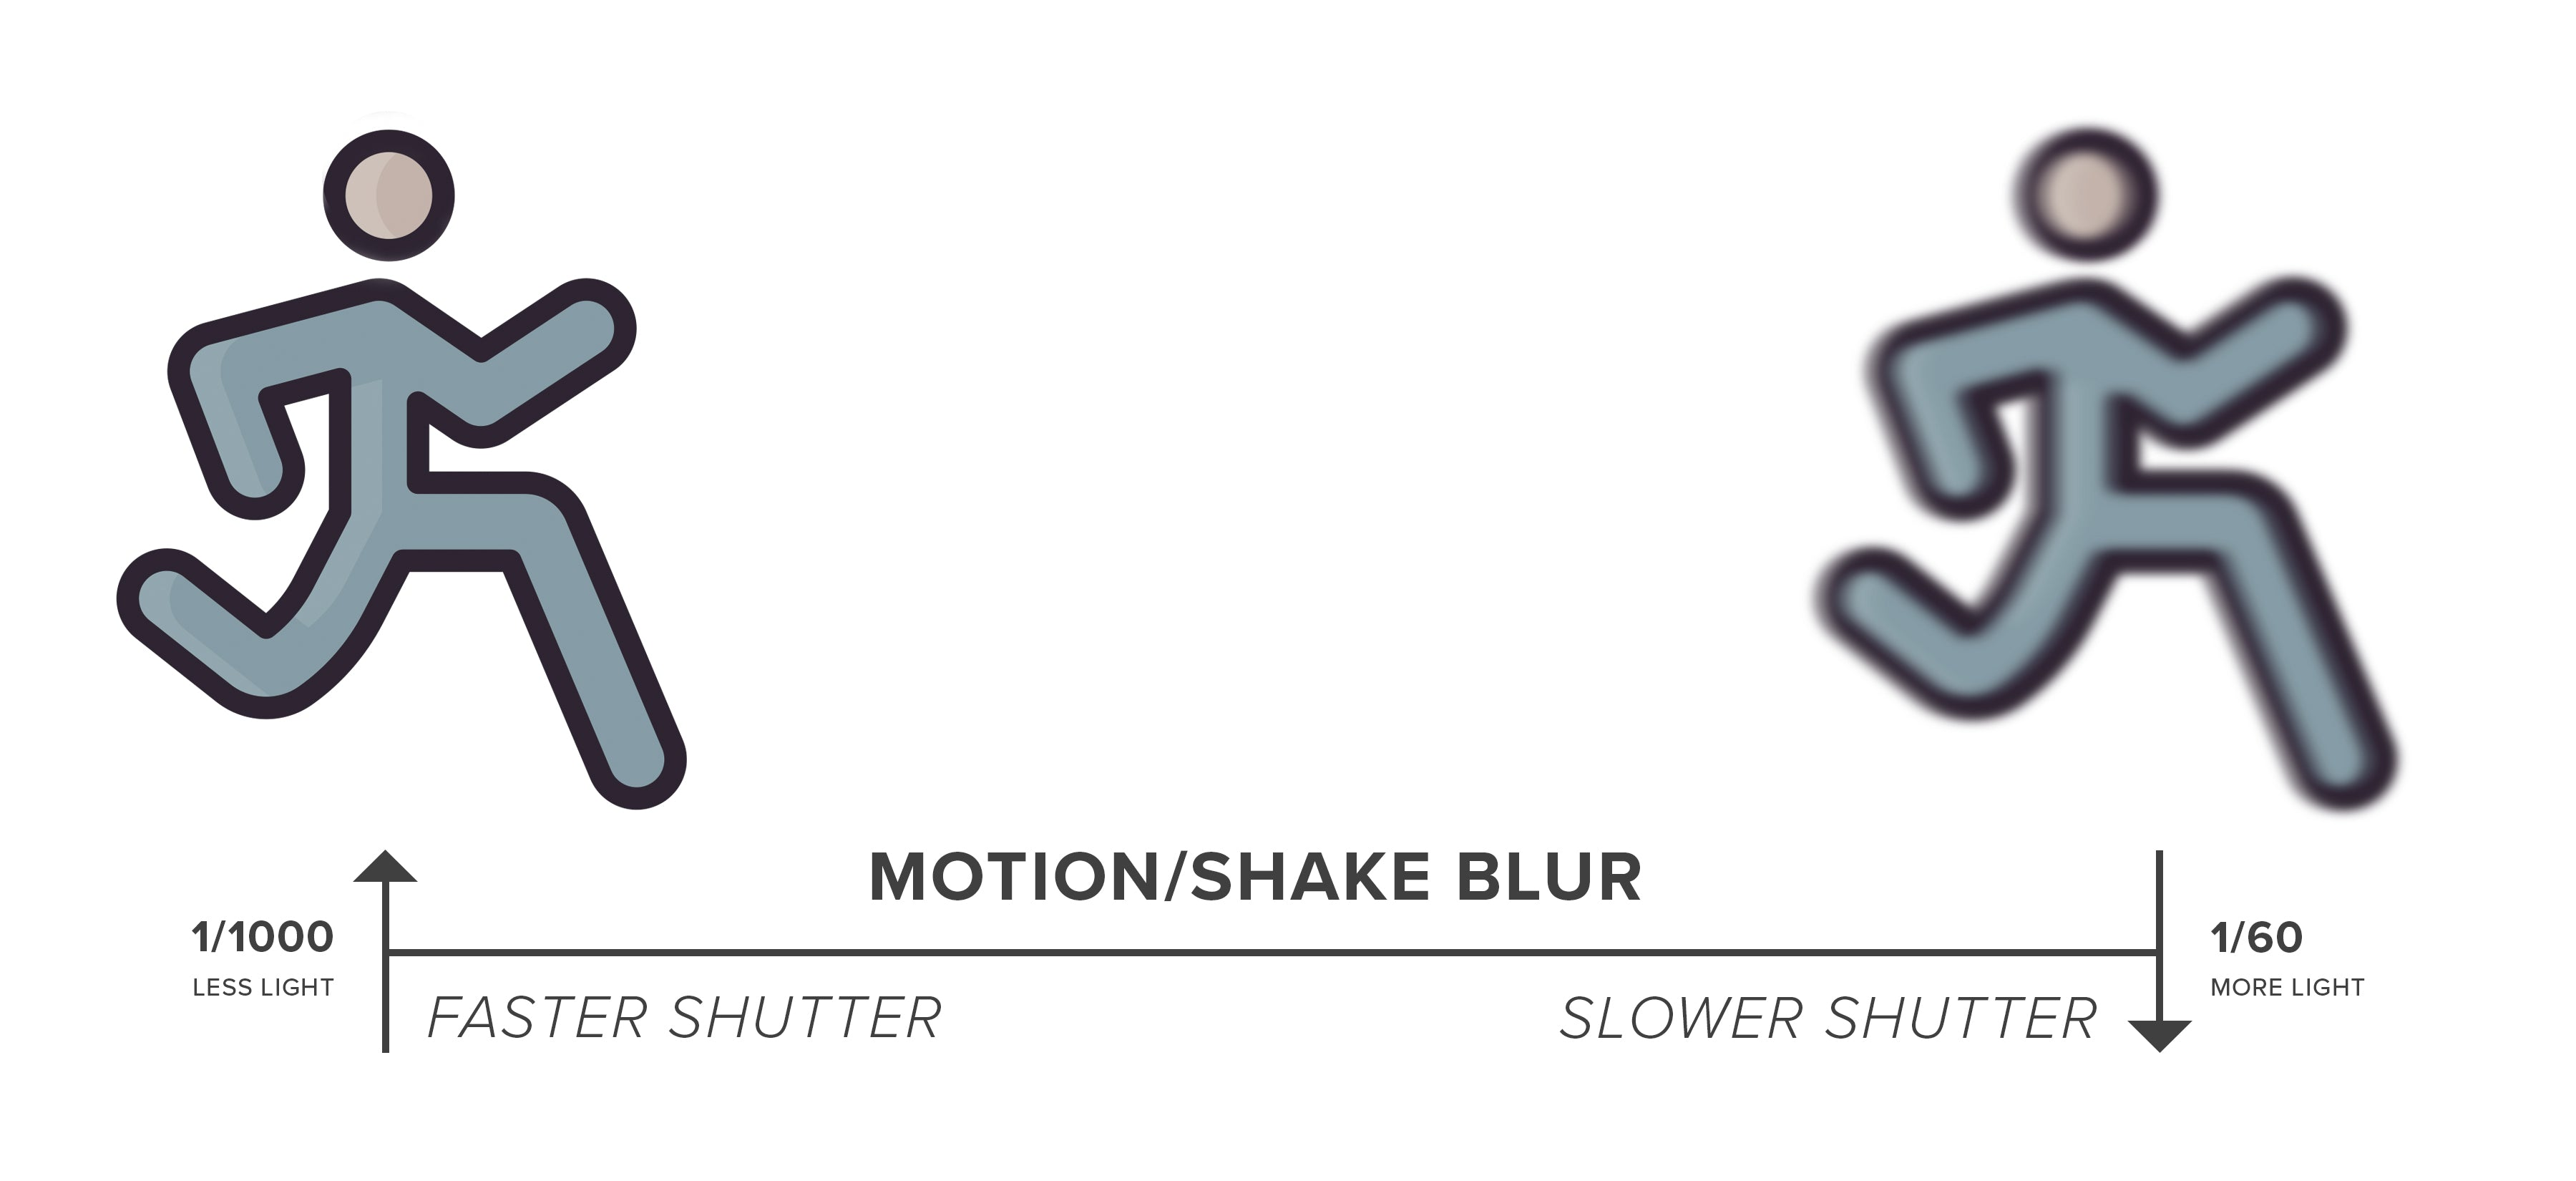 shutter speed and motion blur diagram